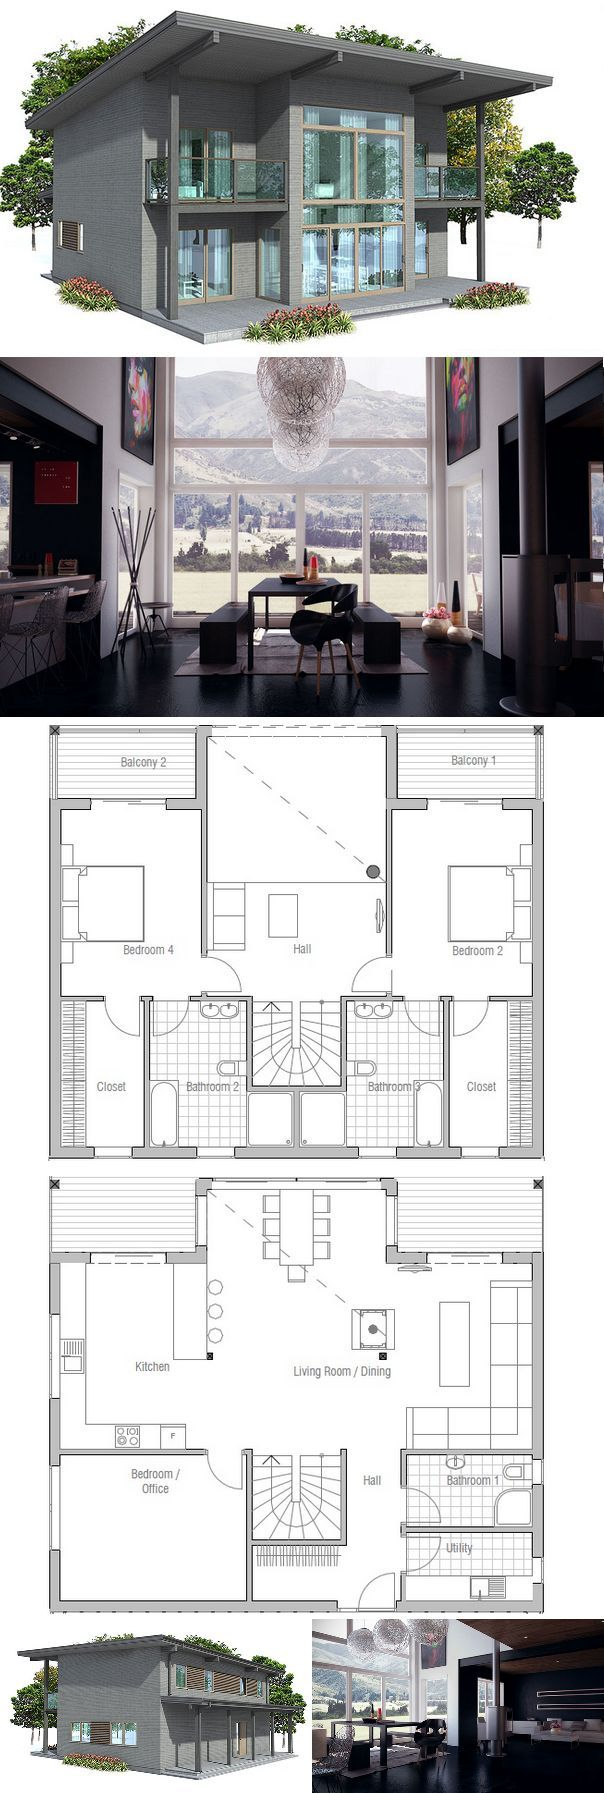 Small House Plan with three bedrooms. Floor plan from ConceptHome.com